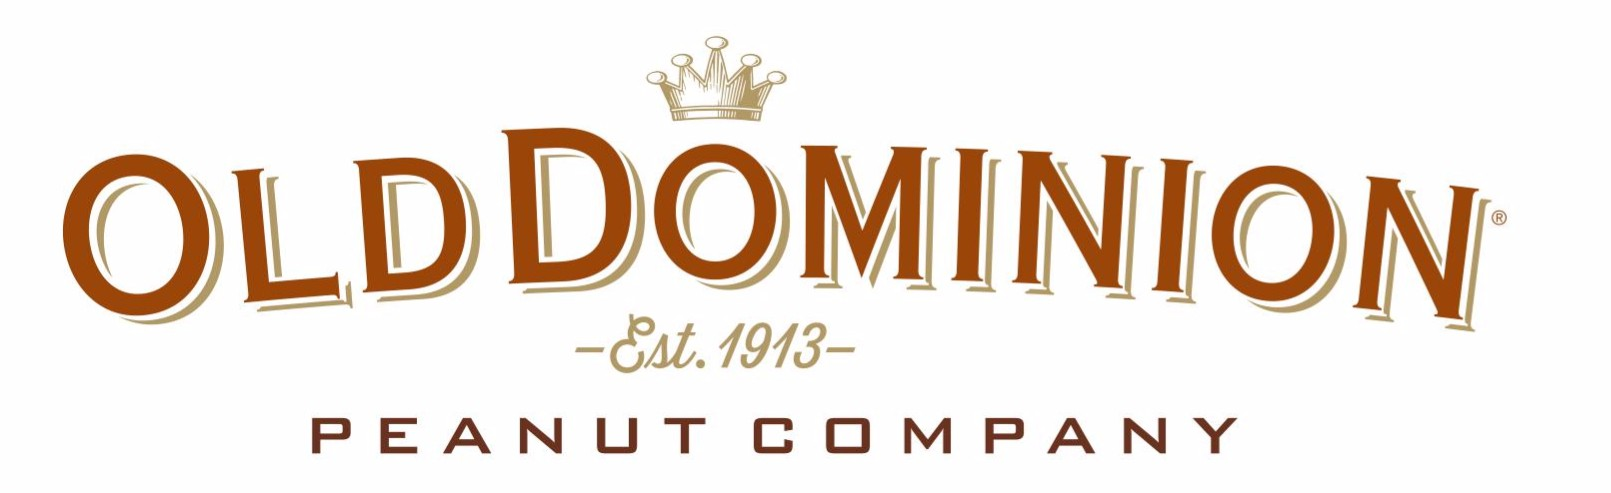 Old Dominions Peanut Company Buy Now at Digs N Gifts